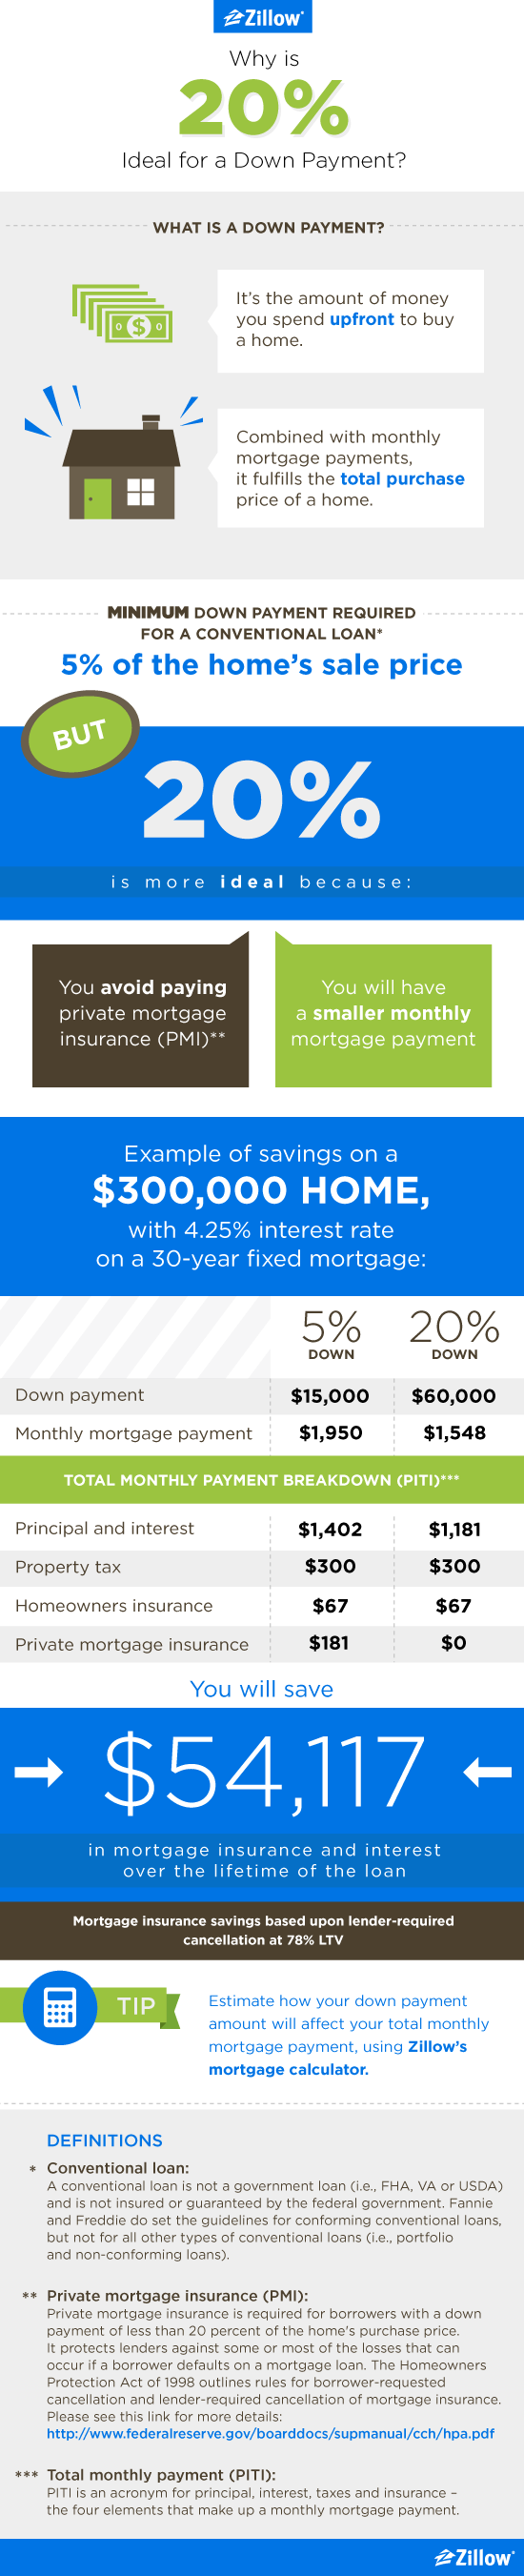 Blog_20Percent_Infograph_Zillow_05-27_a_03